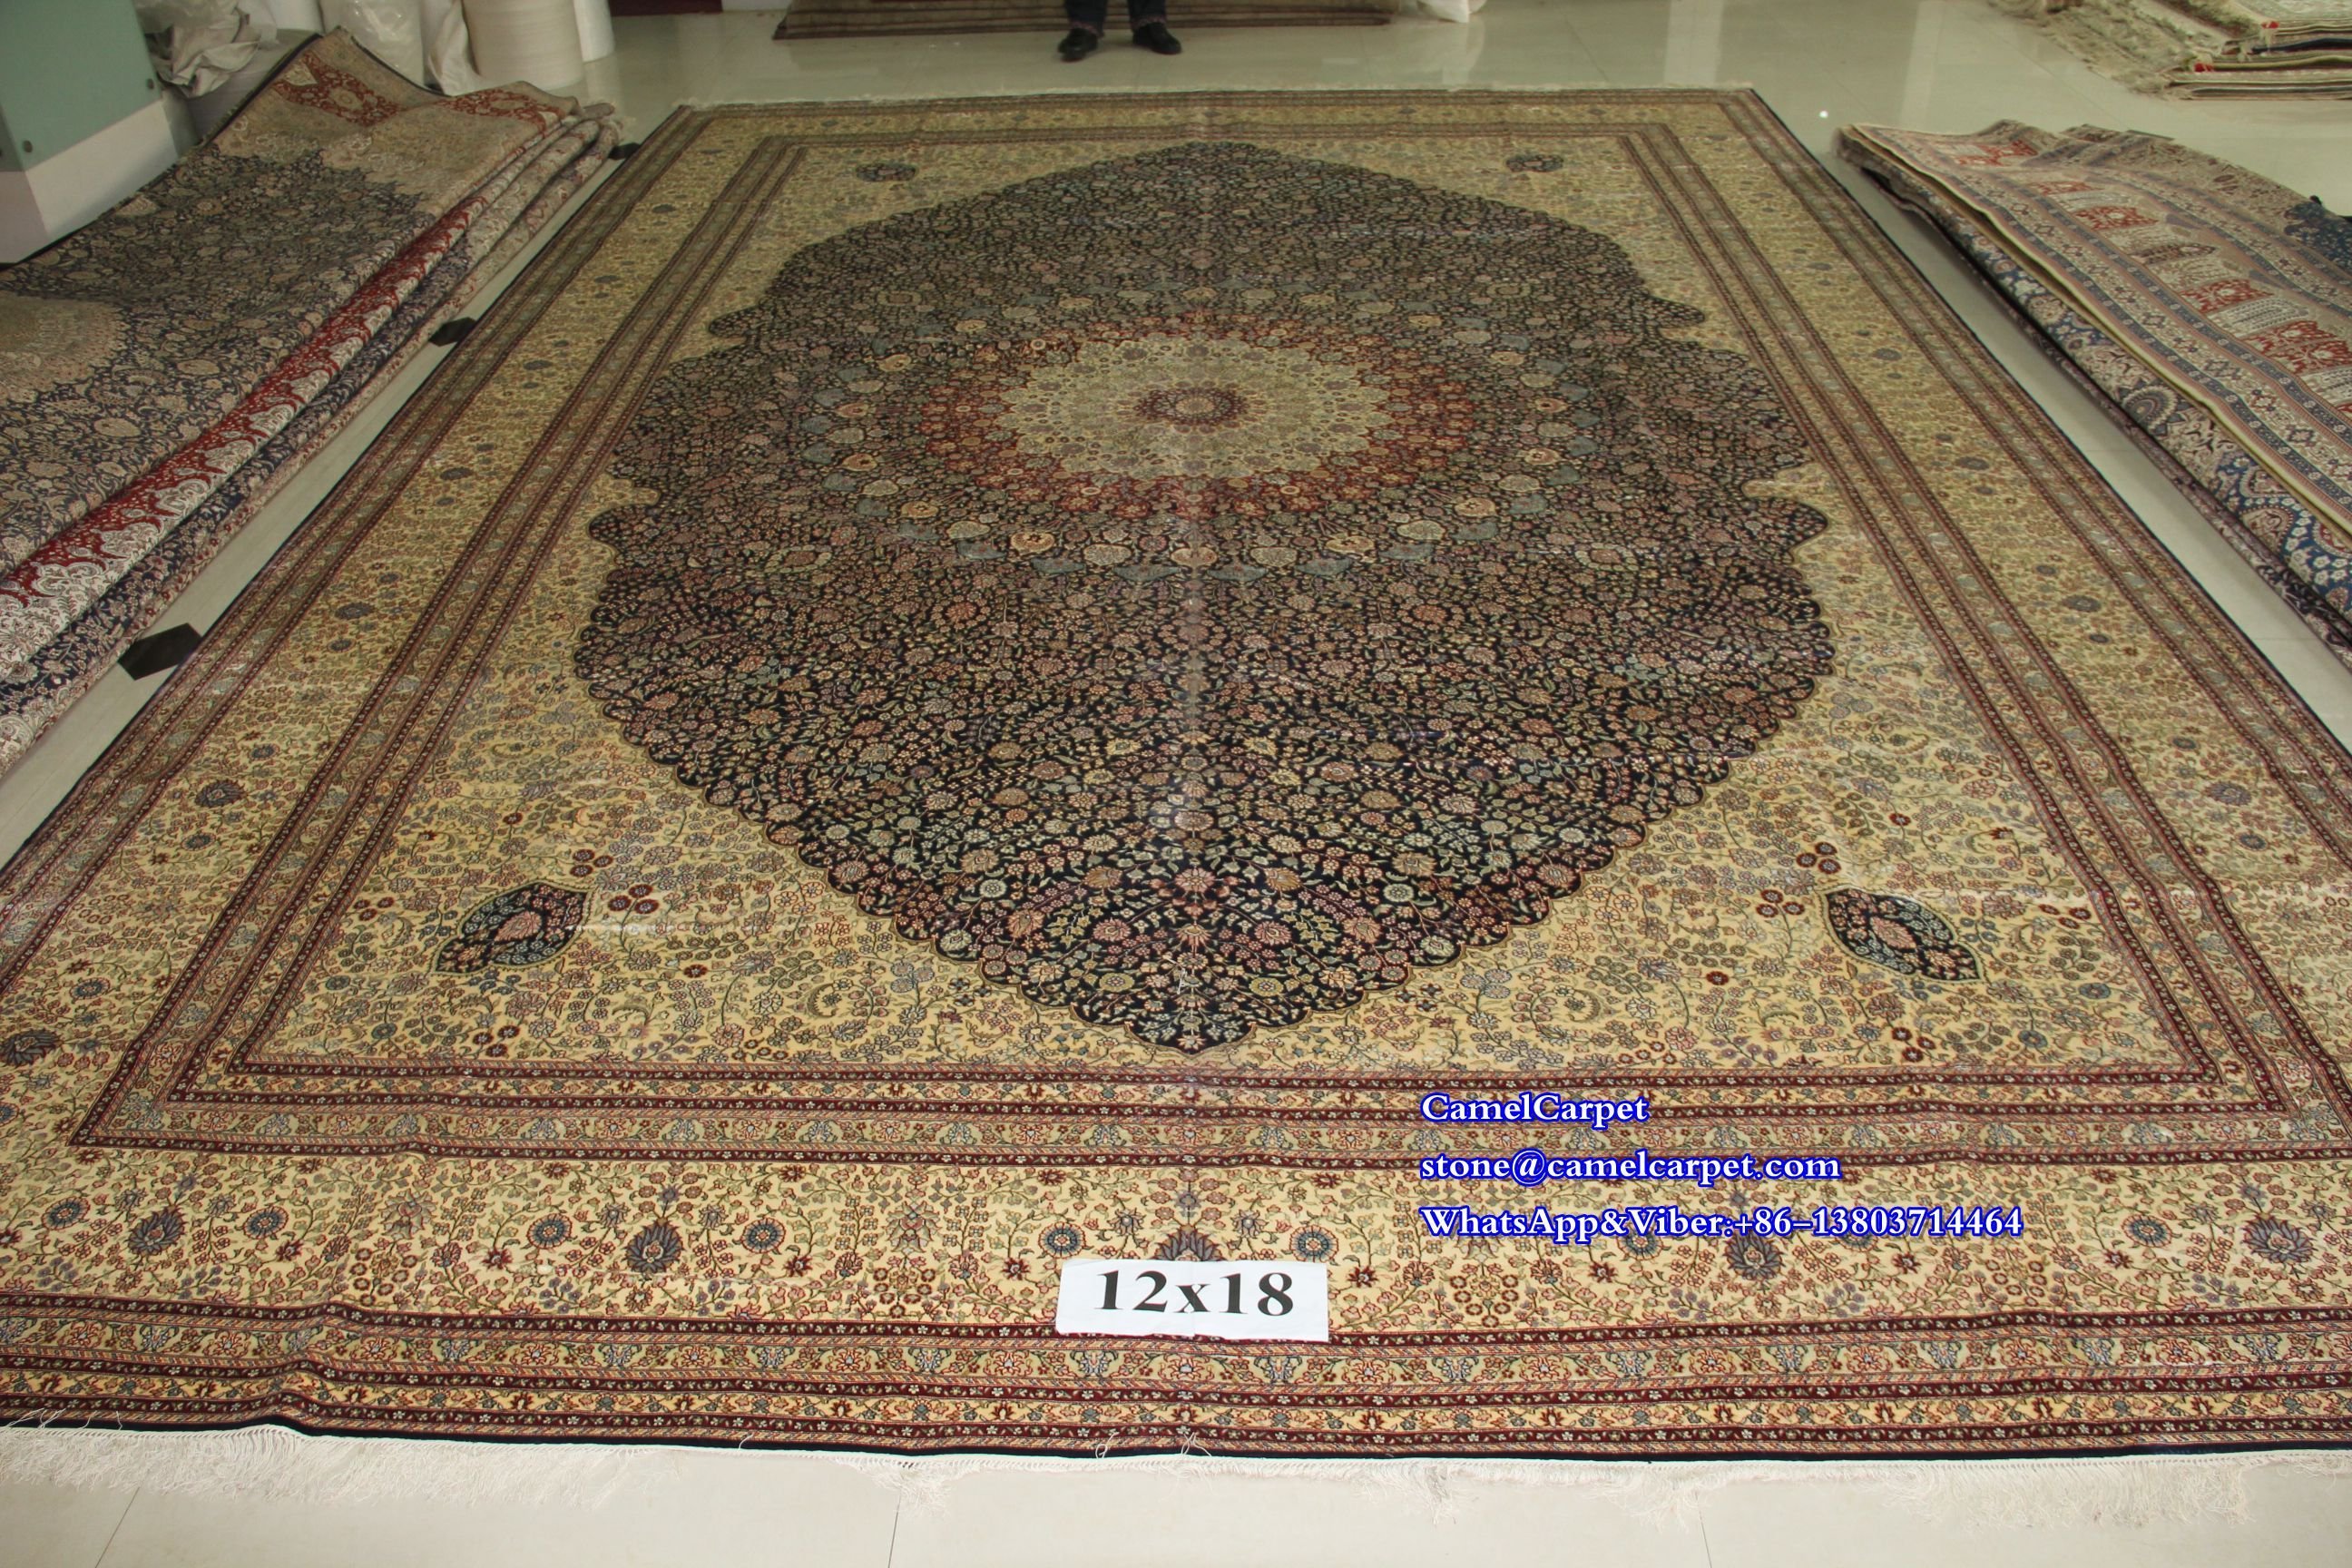 Size12x18ft Silk Carpet 100 Handmade Fine Quality Silk Carpet Carpet Handmade